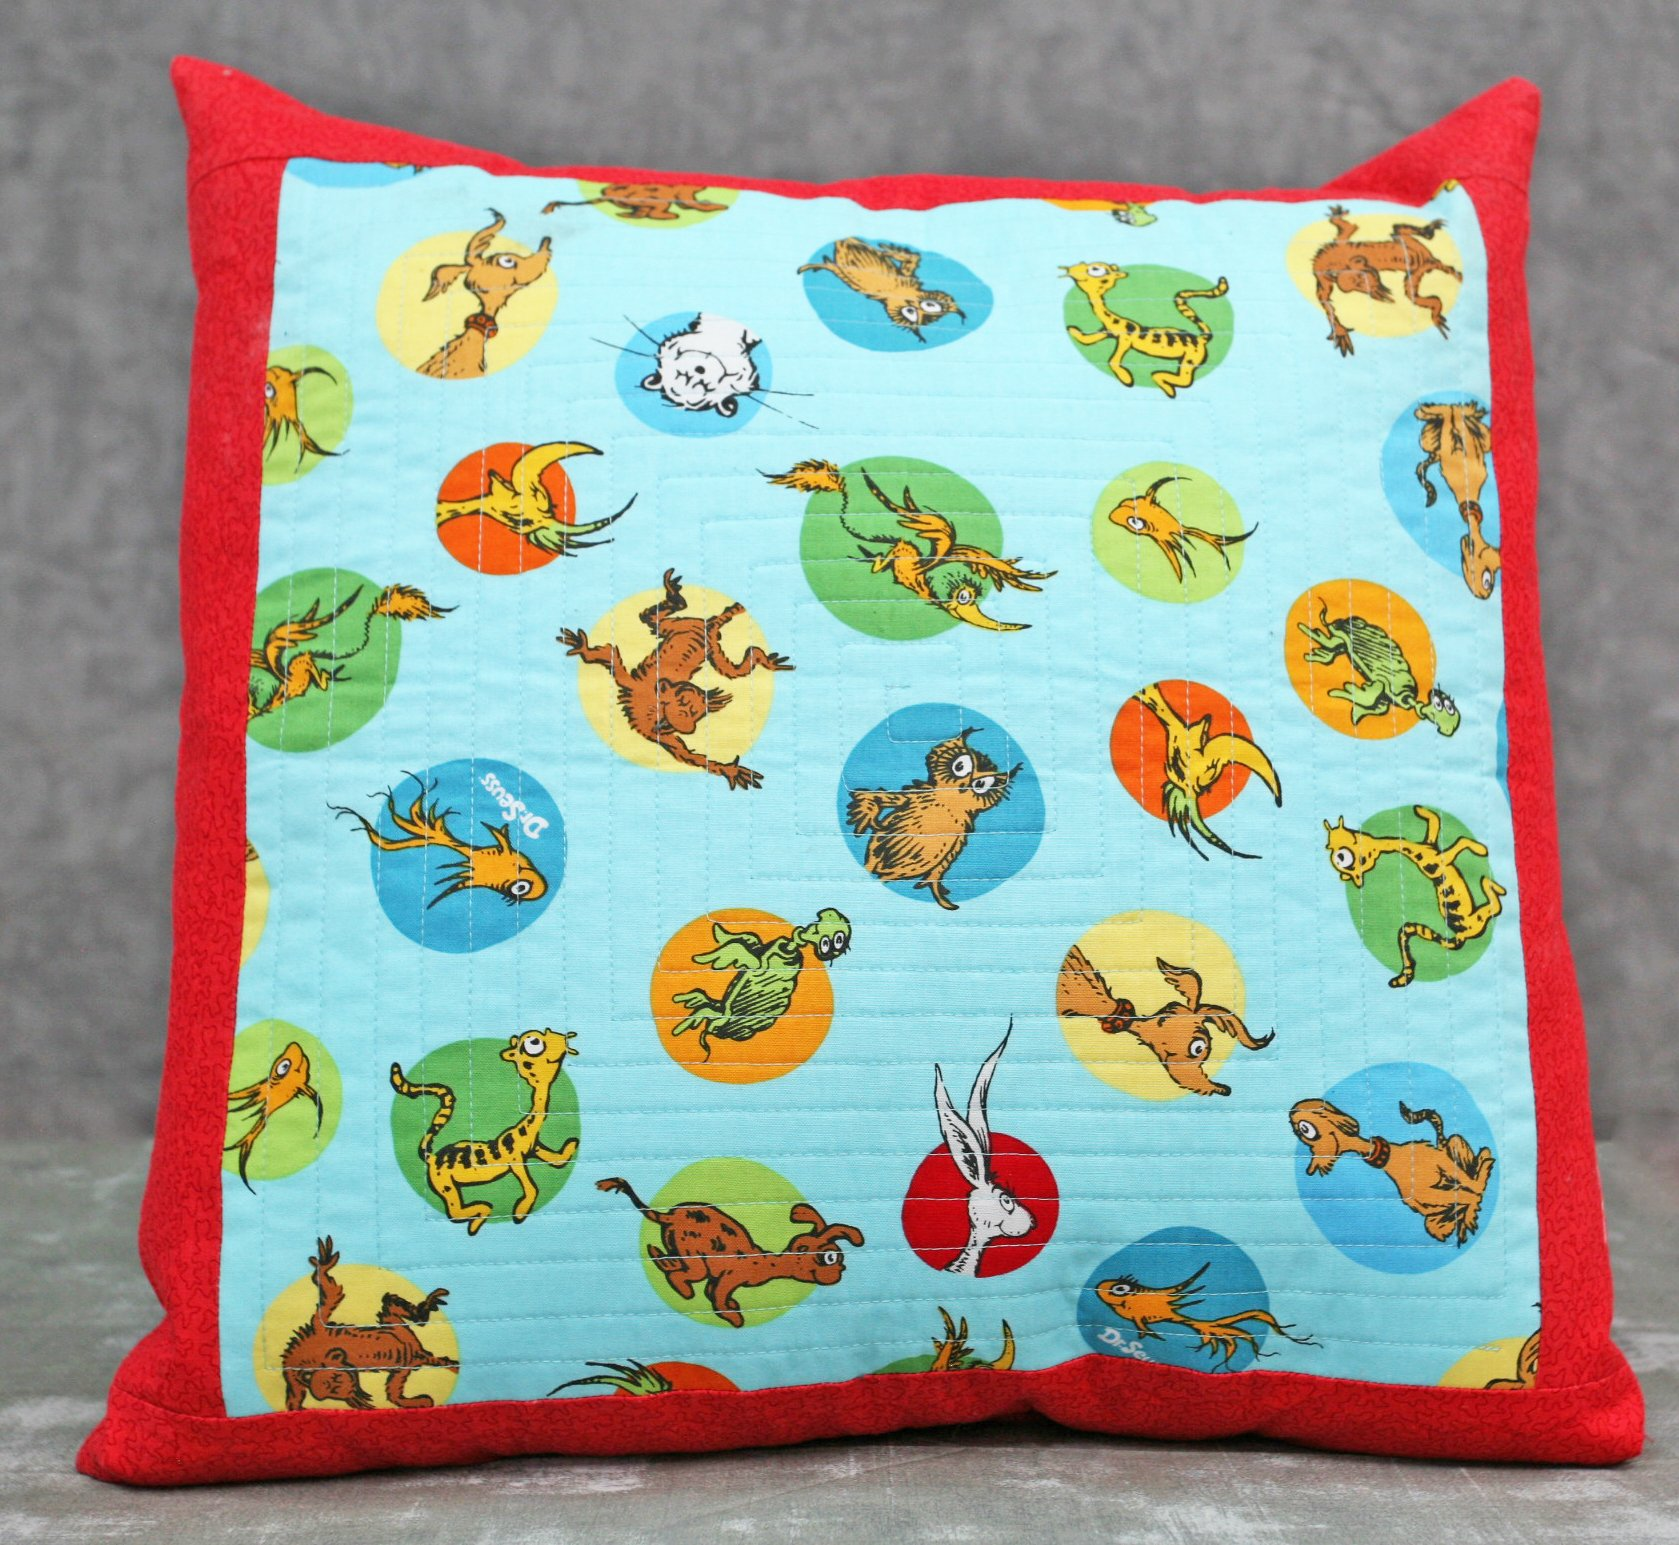 Make Your Own Pillow Cover Kit